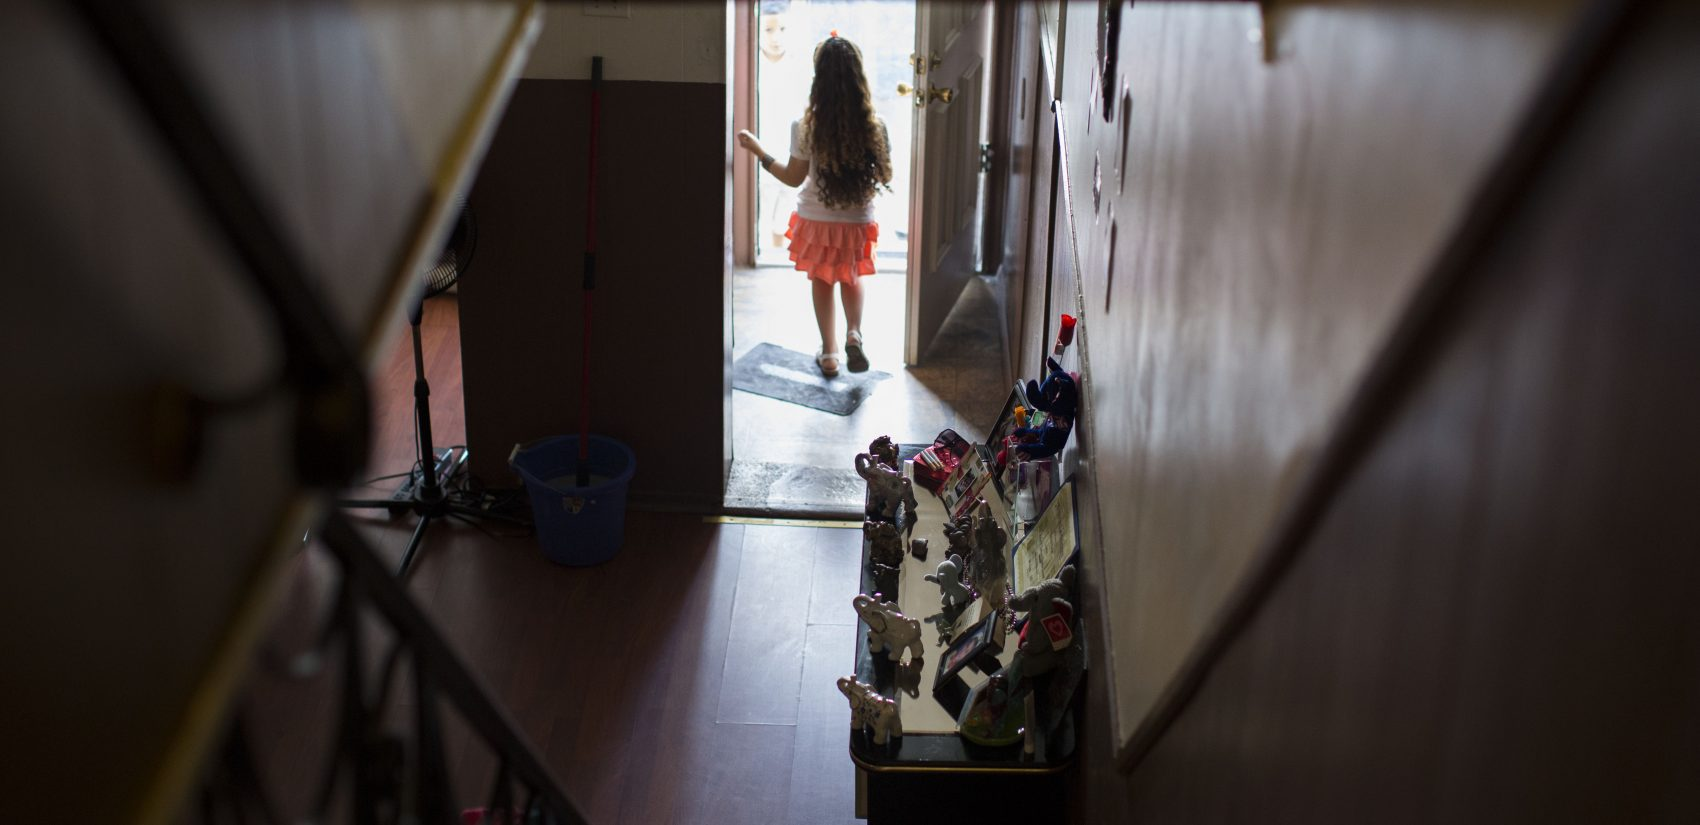 Layla Zayas stands at the front door of her home in Kensington. (Jessica Kourkounis/For Keystone Crossroads)